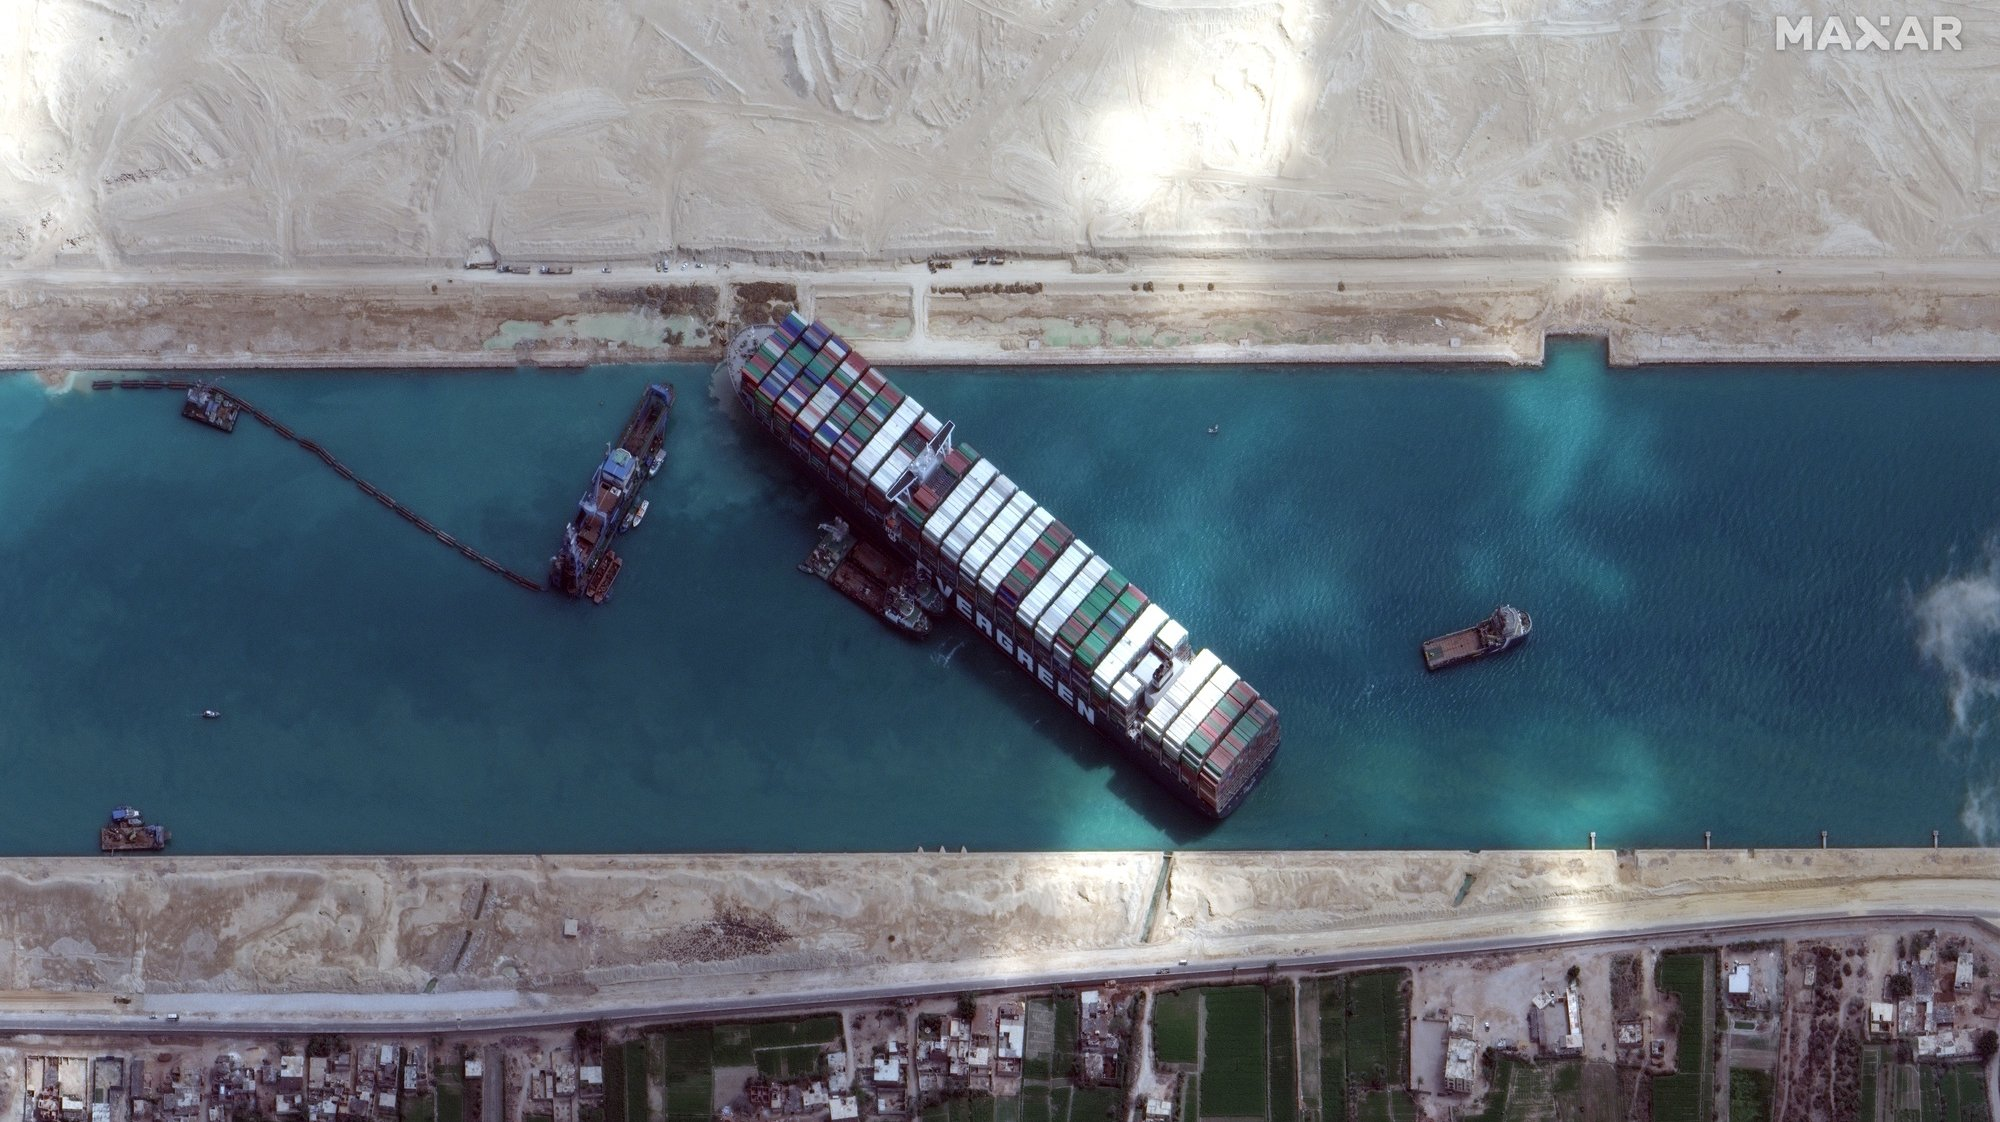 epa09103099 A handout satellite image made available by MAXAR Technologies shows excavation around the bow of the 'Ever Given' and dredging operations in progress, in the Suez Canal, Egypt, 28 March 2021. The large container ship Ever Given ran aground in the Suez Canal on 23 March, blocking passage of other ships and causing a traffic jam for cargo vessels.  EPA/MAXAR TECHNOLOGIES HANDOUT MANDATORY CREDIT: SATELLITE IMAGE 2020 MAXAR TECHNOLOGIES -- the watermark may not be removed/cropped -- HANDOUT EDITORIAL USE ONLY/NO SALES